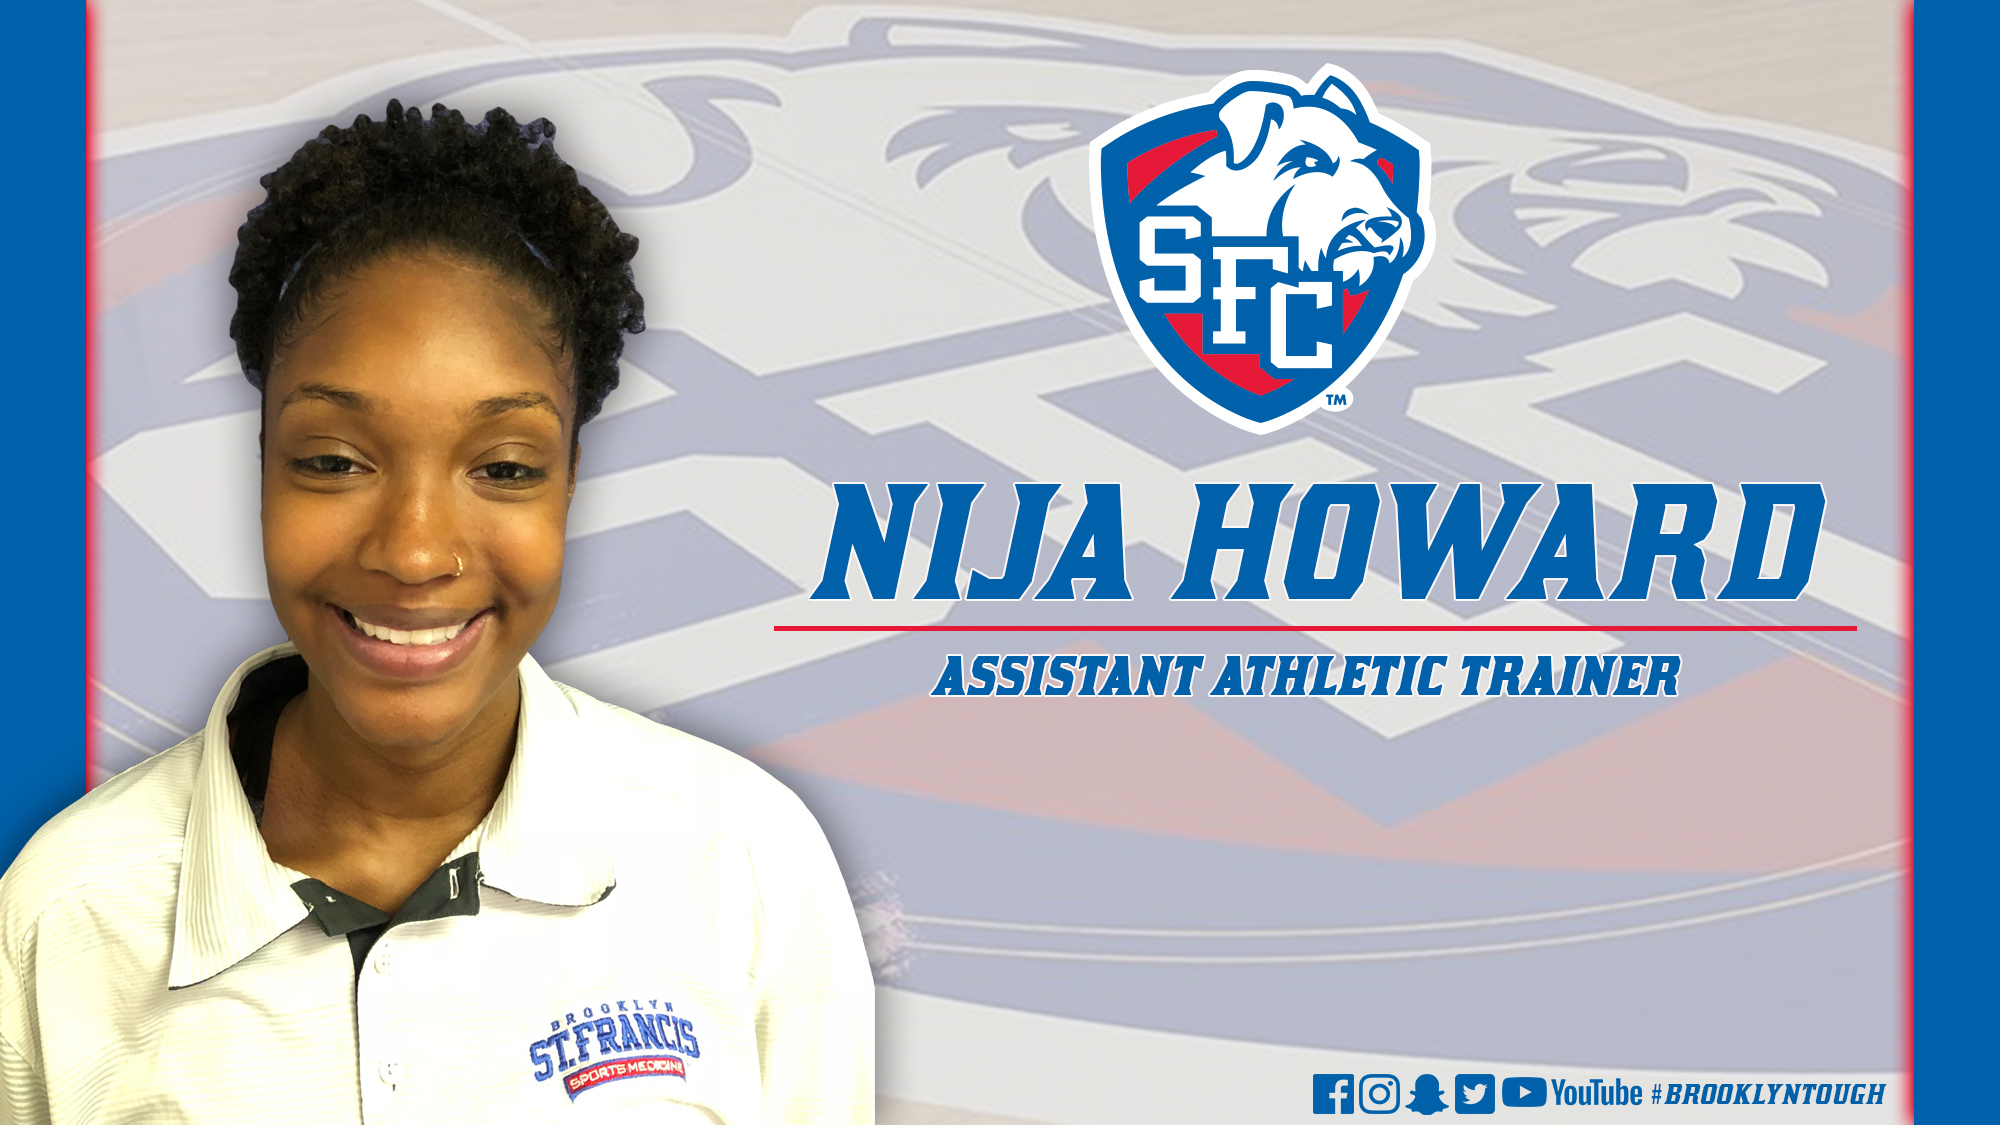 Nija Howard Named Assistant Athletic Trainer - St  Francis